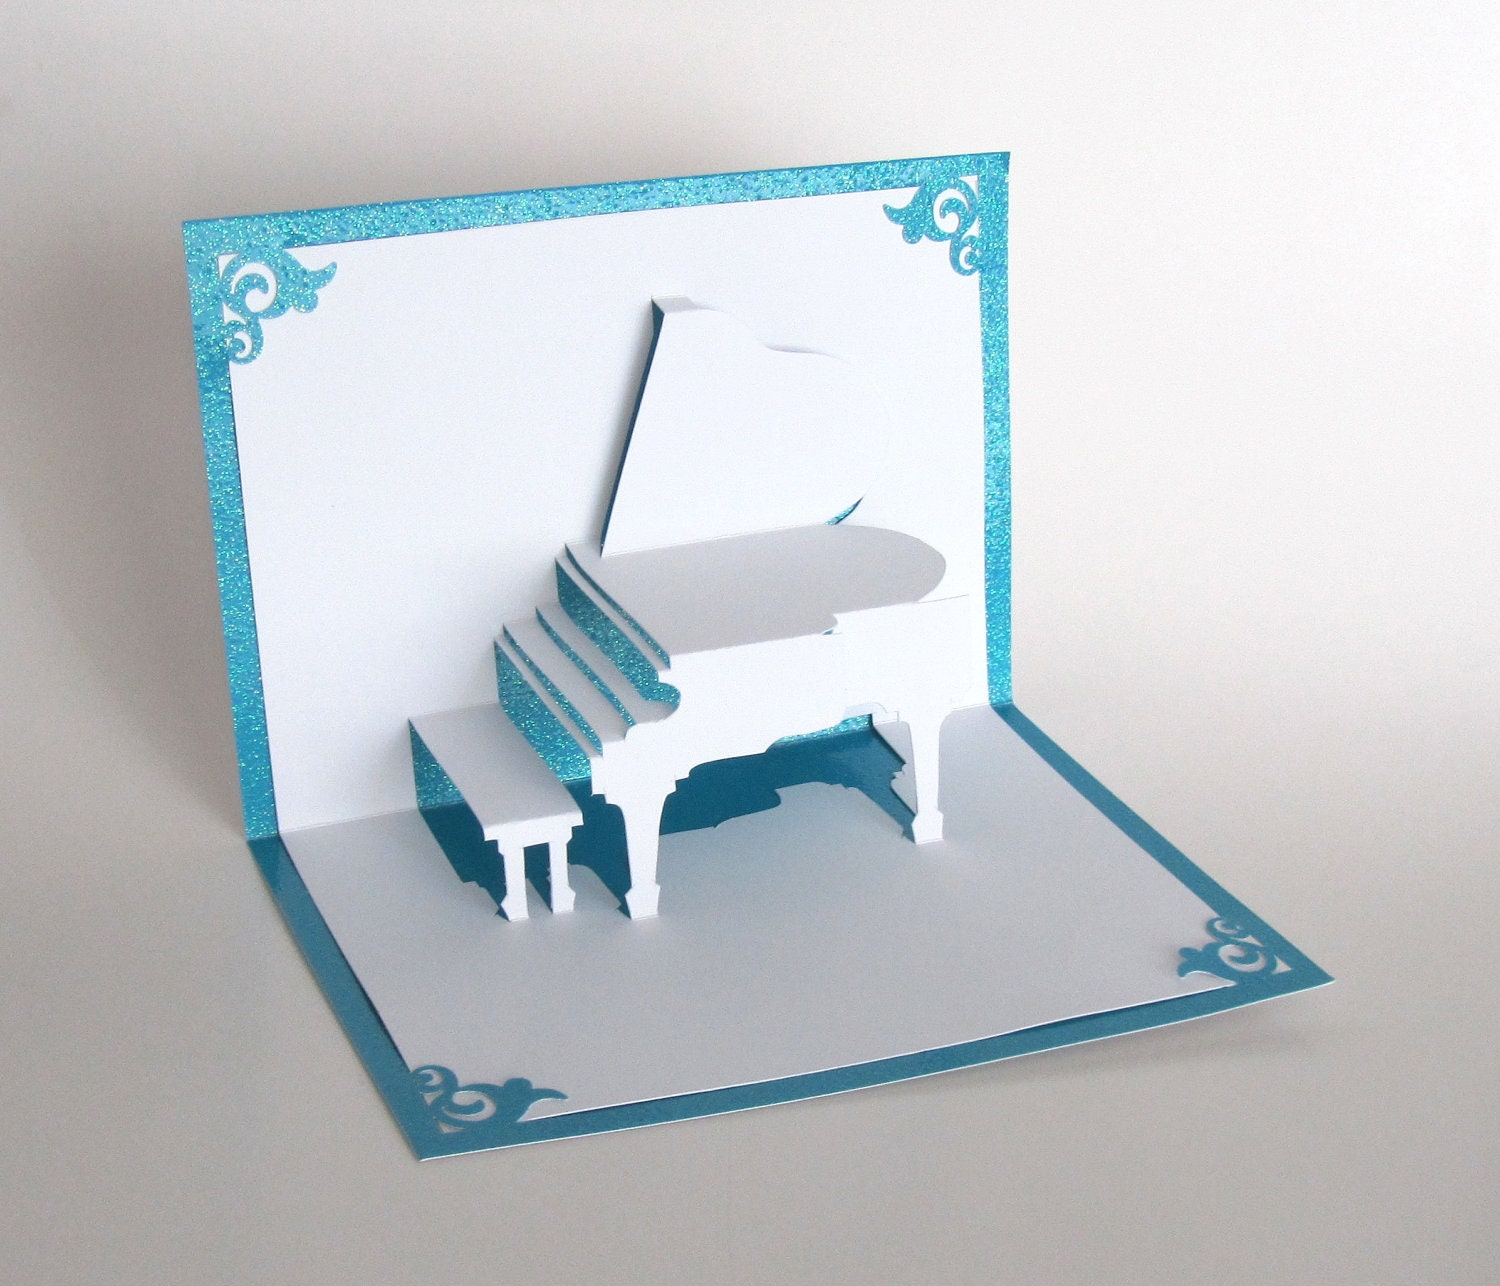 GRAND PIANO 3D PopUp Greeting Card Handmade Cut by Hand – Make a Pop Up Birthday Card